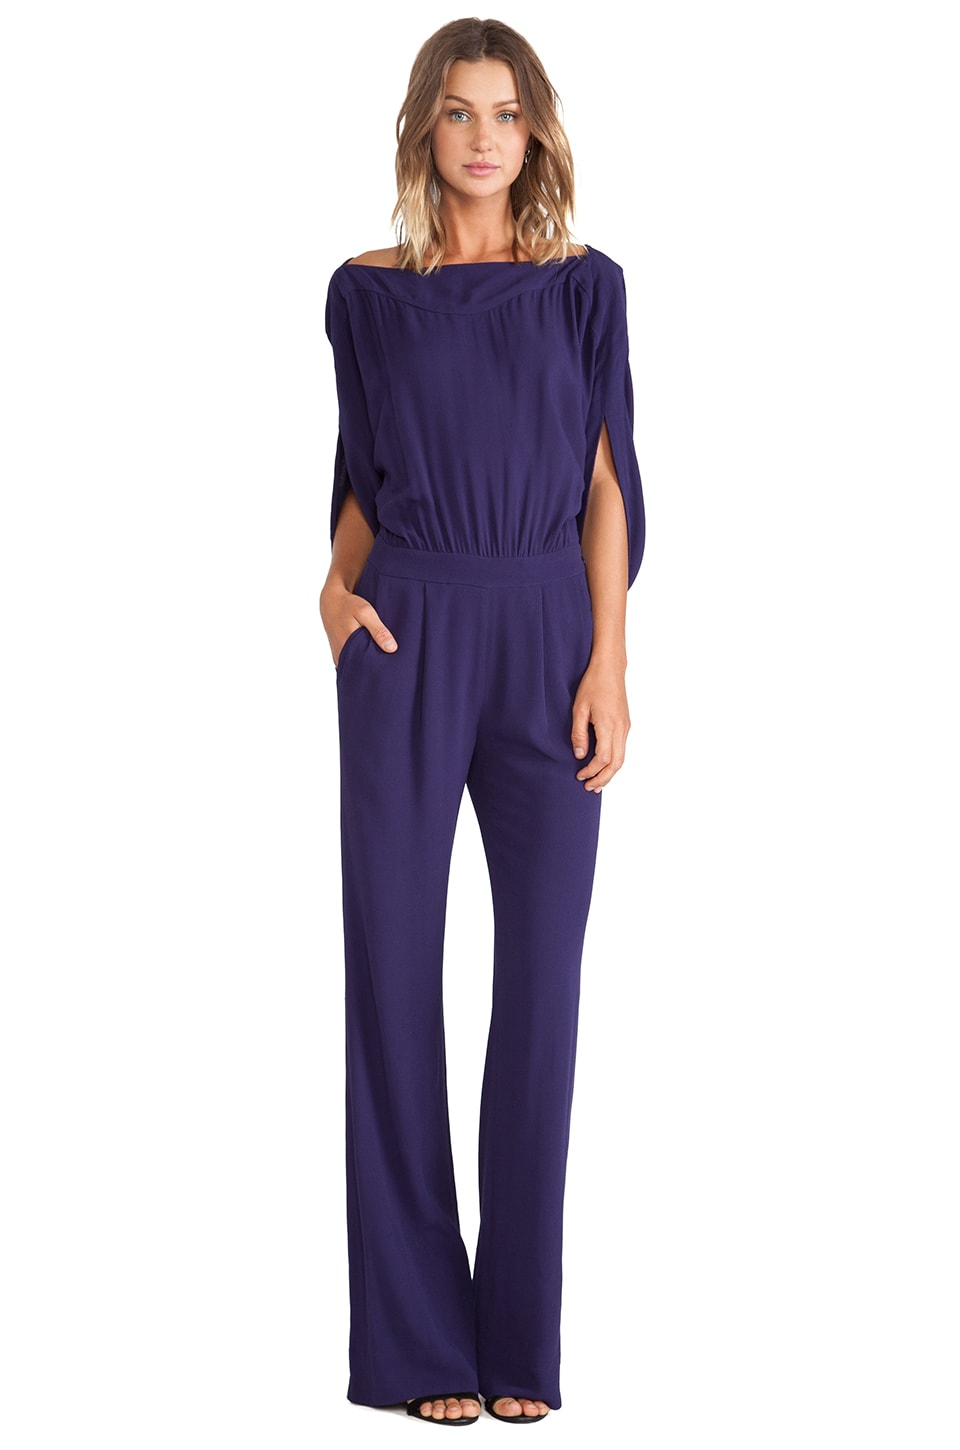 Diane von Furstenberg Dezi Jumpsuit in Purple Haze